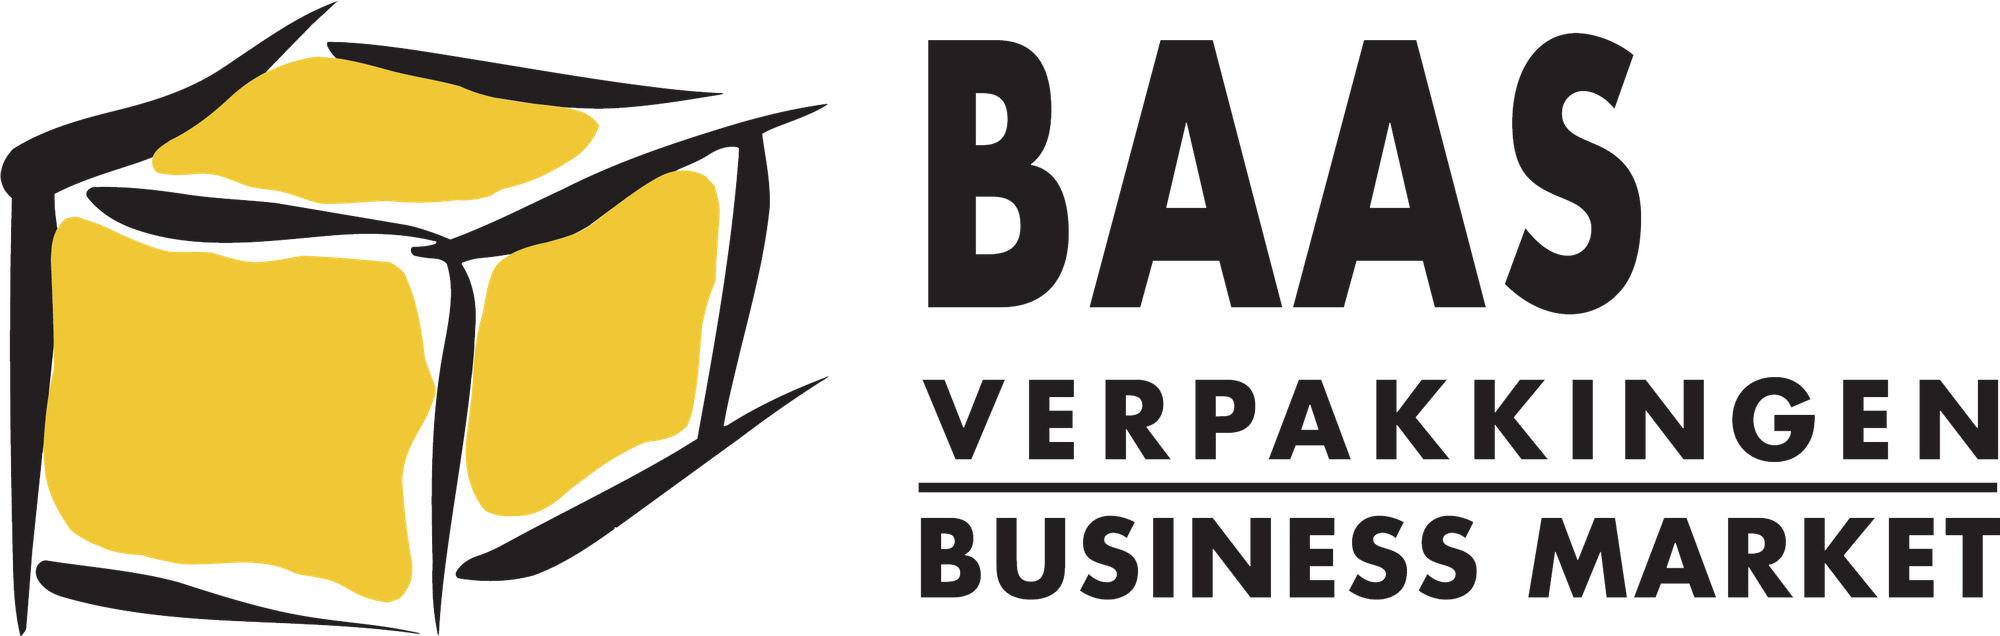 Blog van Baas Business Market B.V.